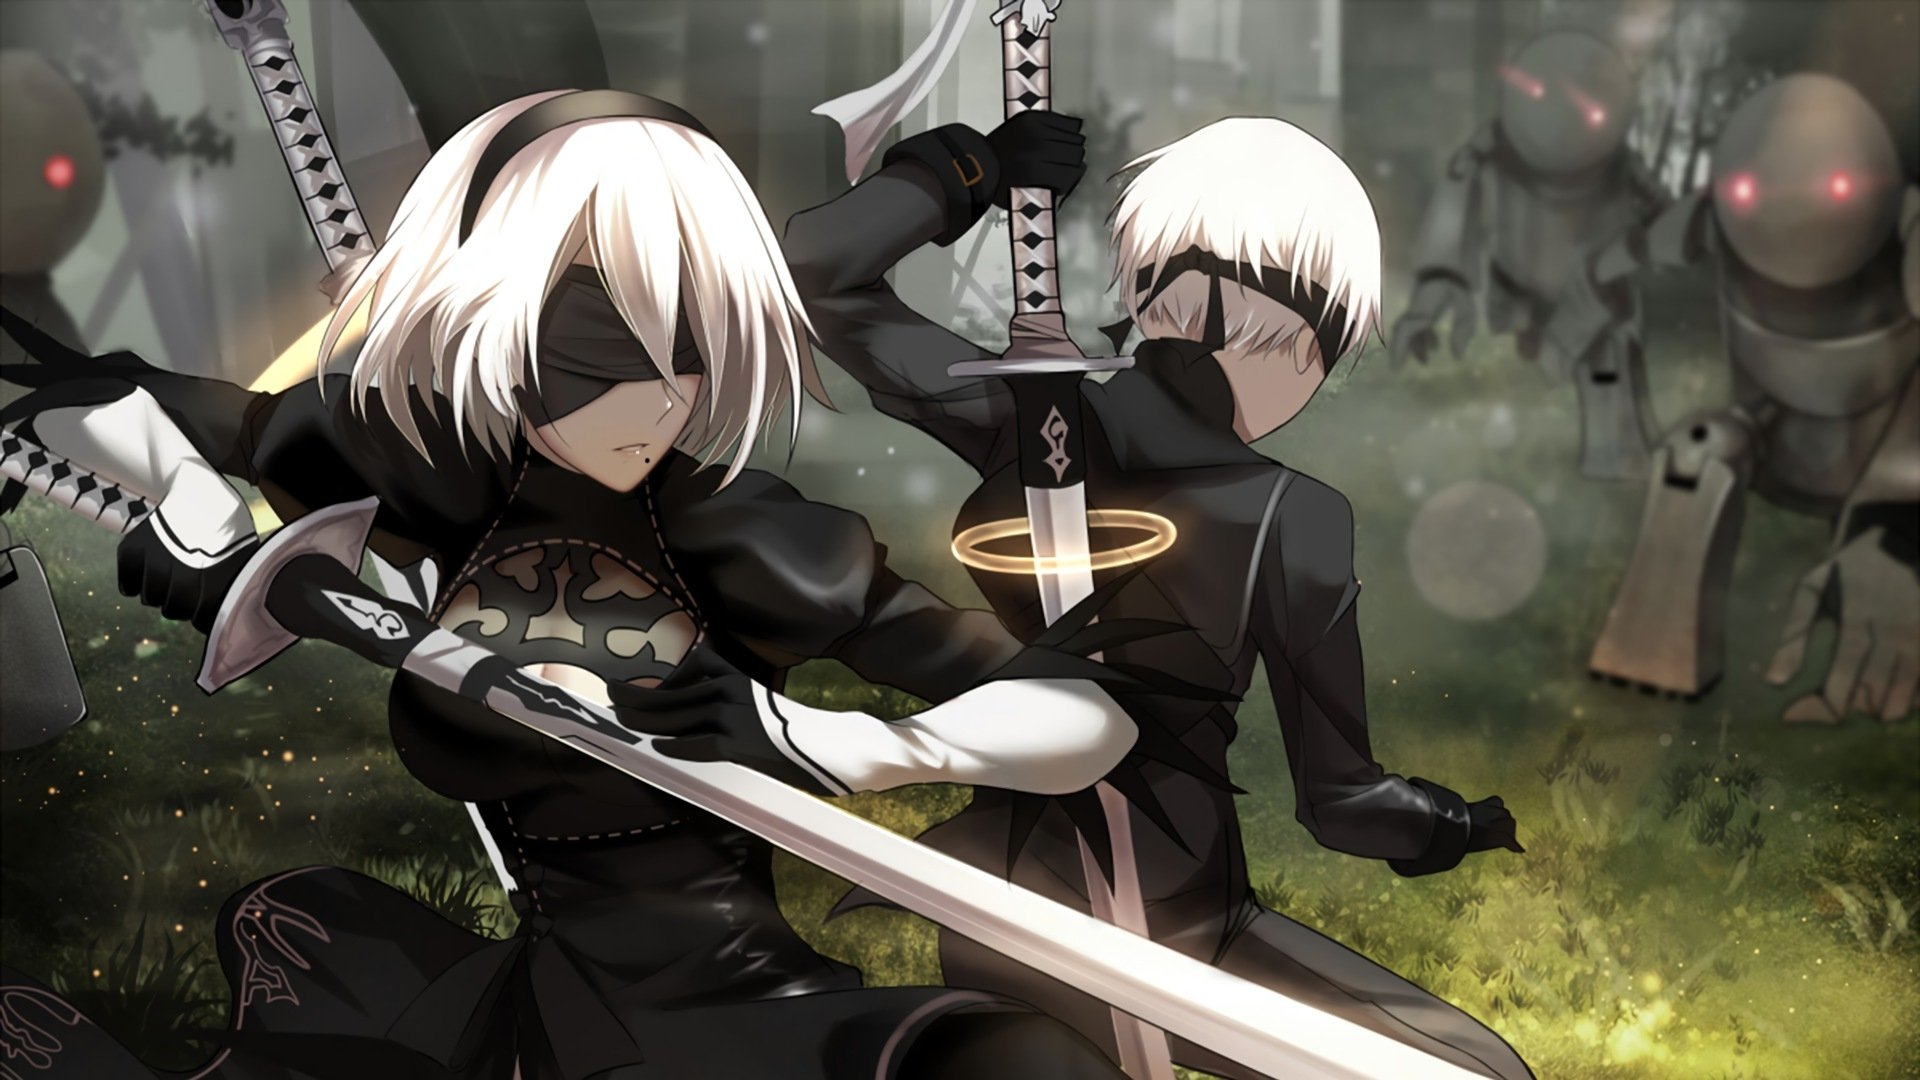 Crip Girl Wallpaper Nier Automata Hd Wallpaper Background Image 1920x1080